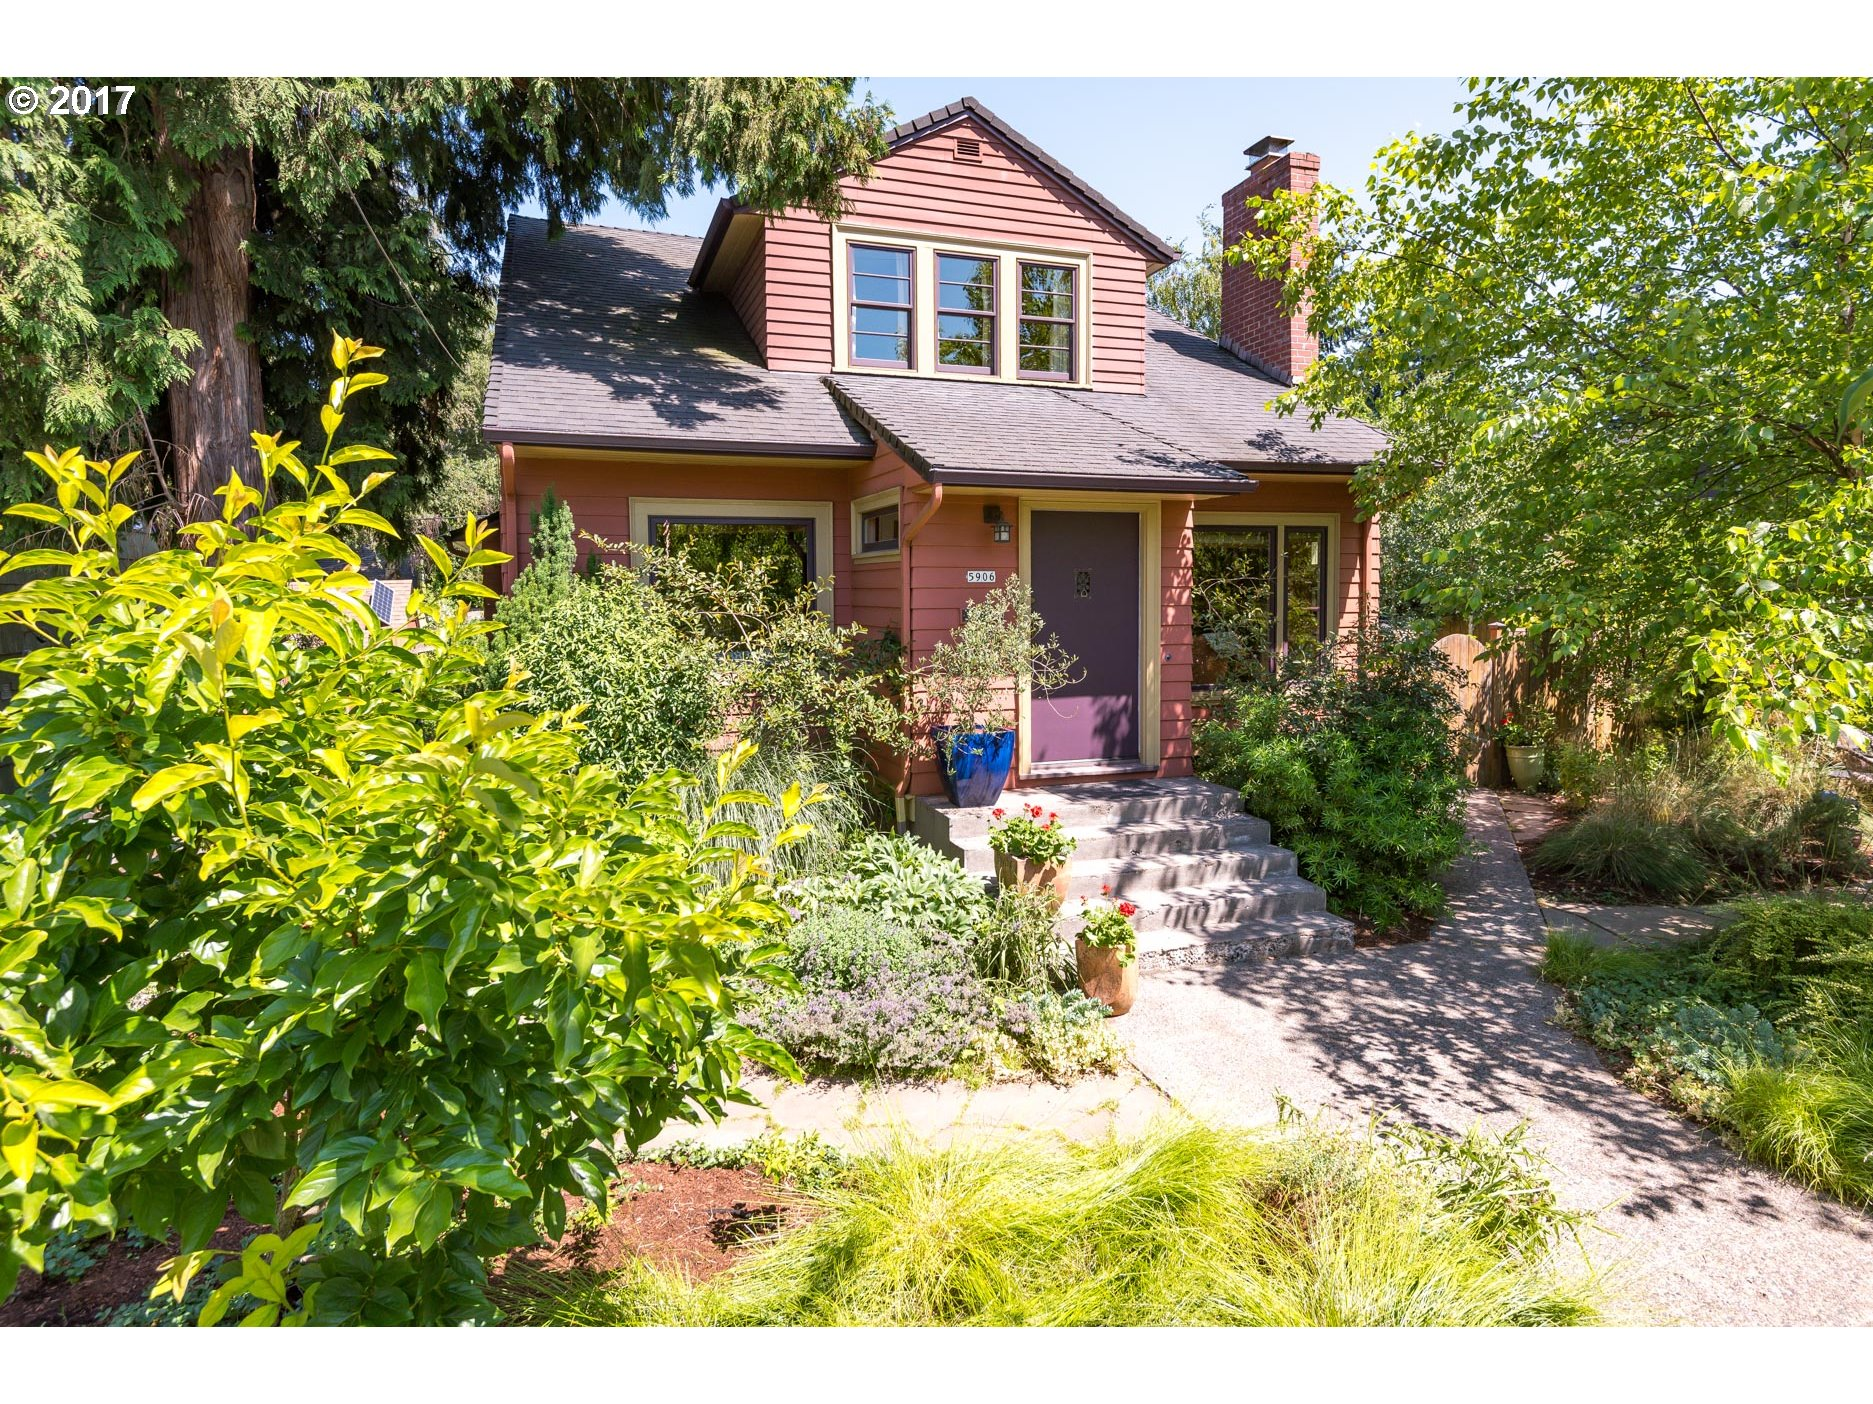 5906 Ne 26th Ave, Portland, OR 97211